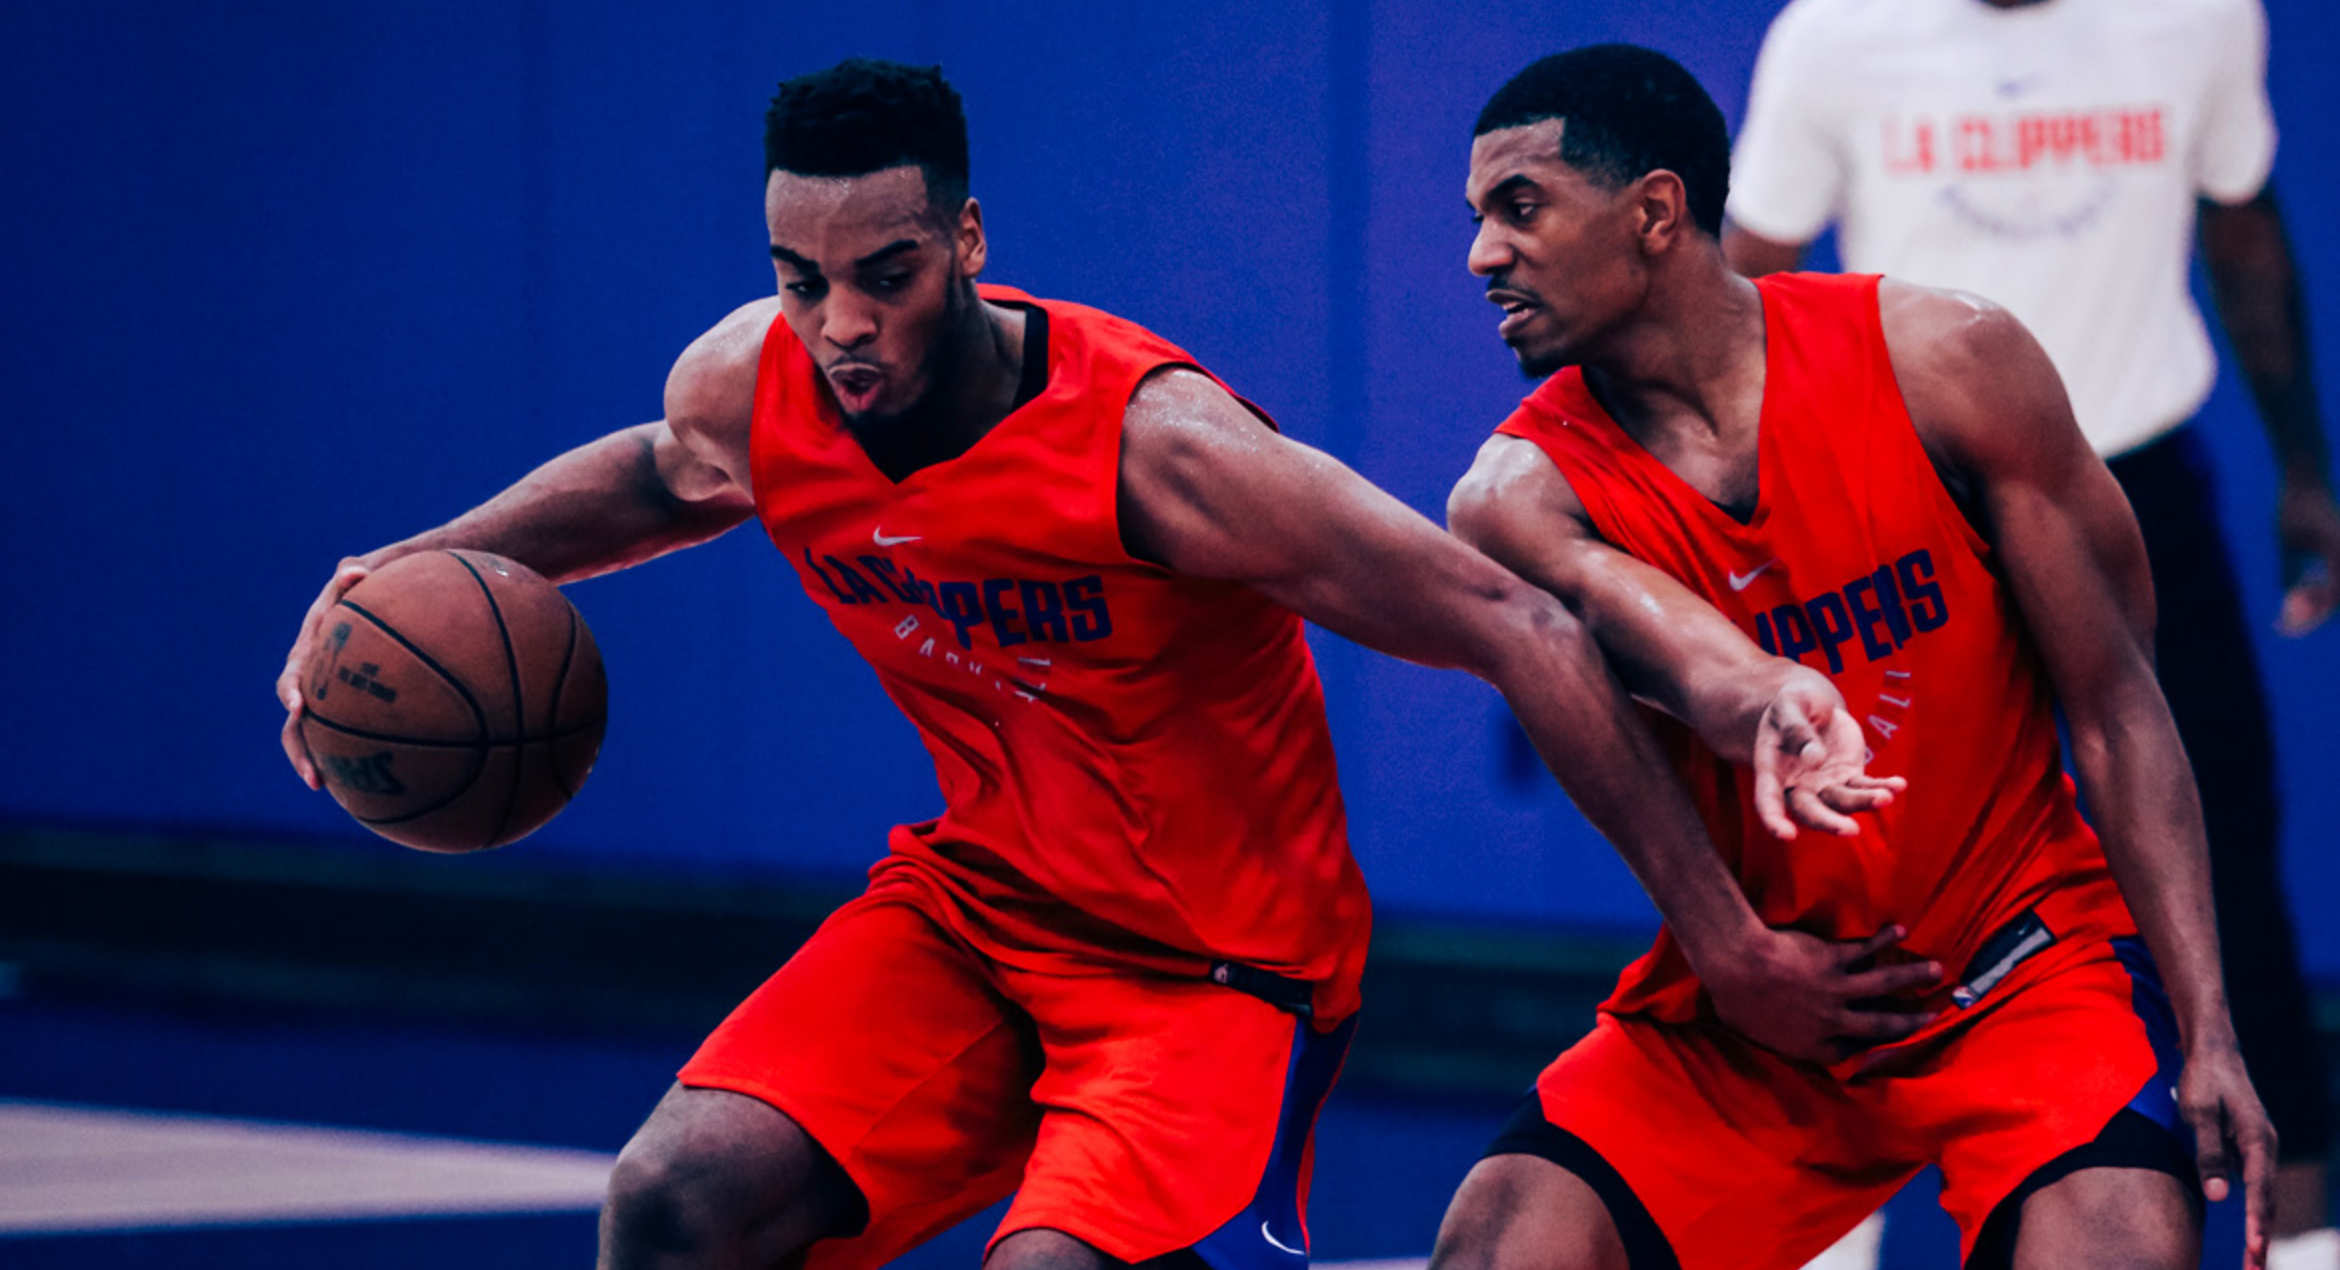 Brown, Melton, and Smith Headline Clippers' Workout